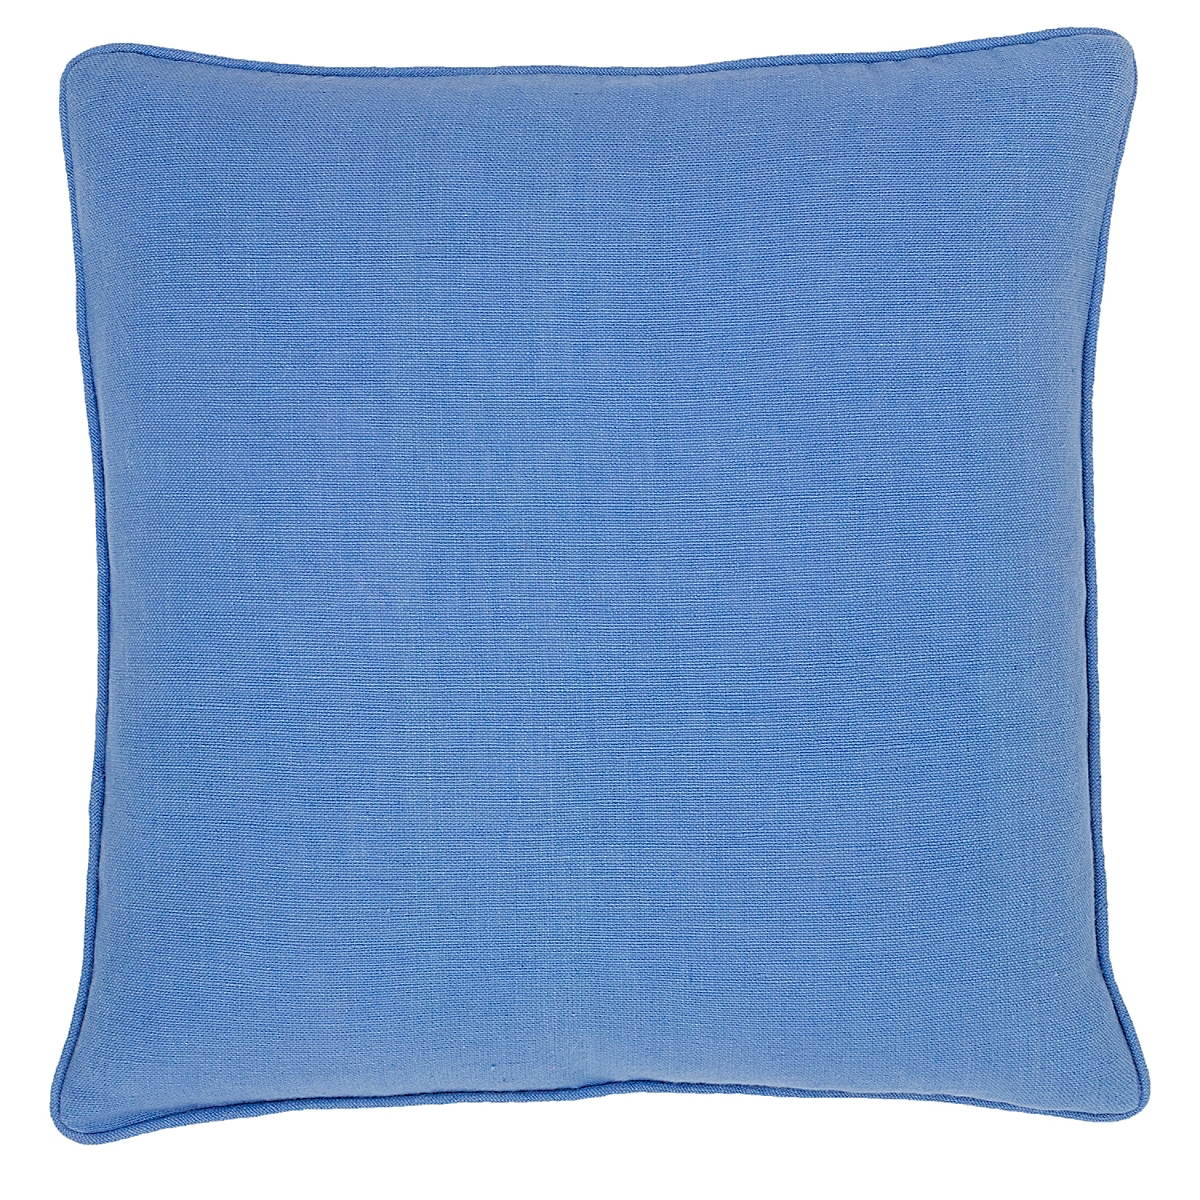 Stone Washed Linen Periwinkle Decorative Pillow